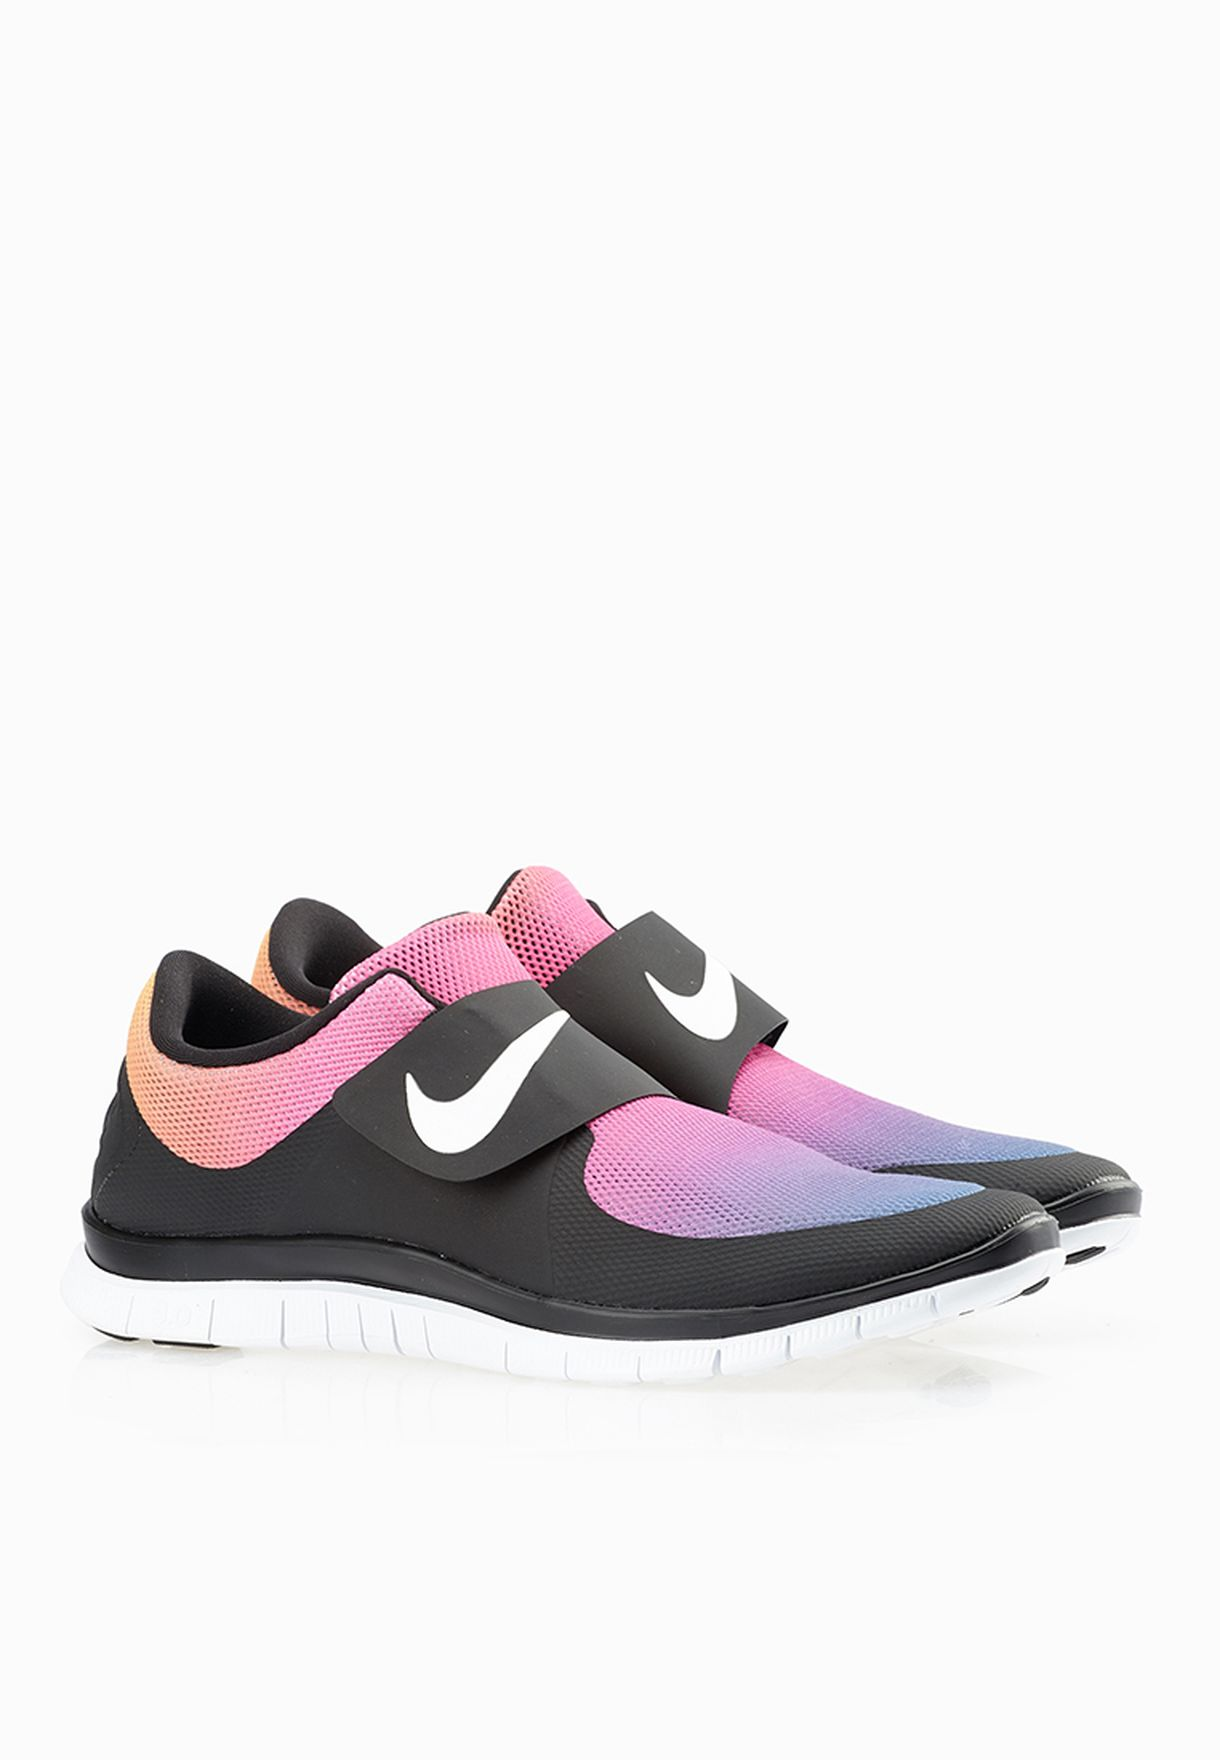 40b5f075c8f8 Shop Nike multicolor Free Socfly SD 724766-005 for Men in UAE ...